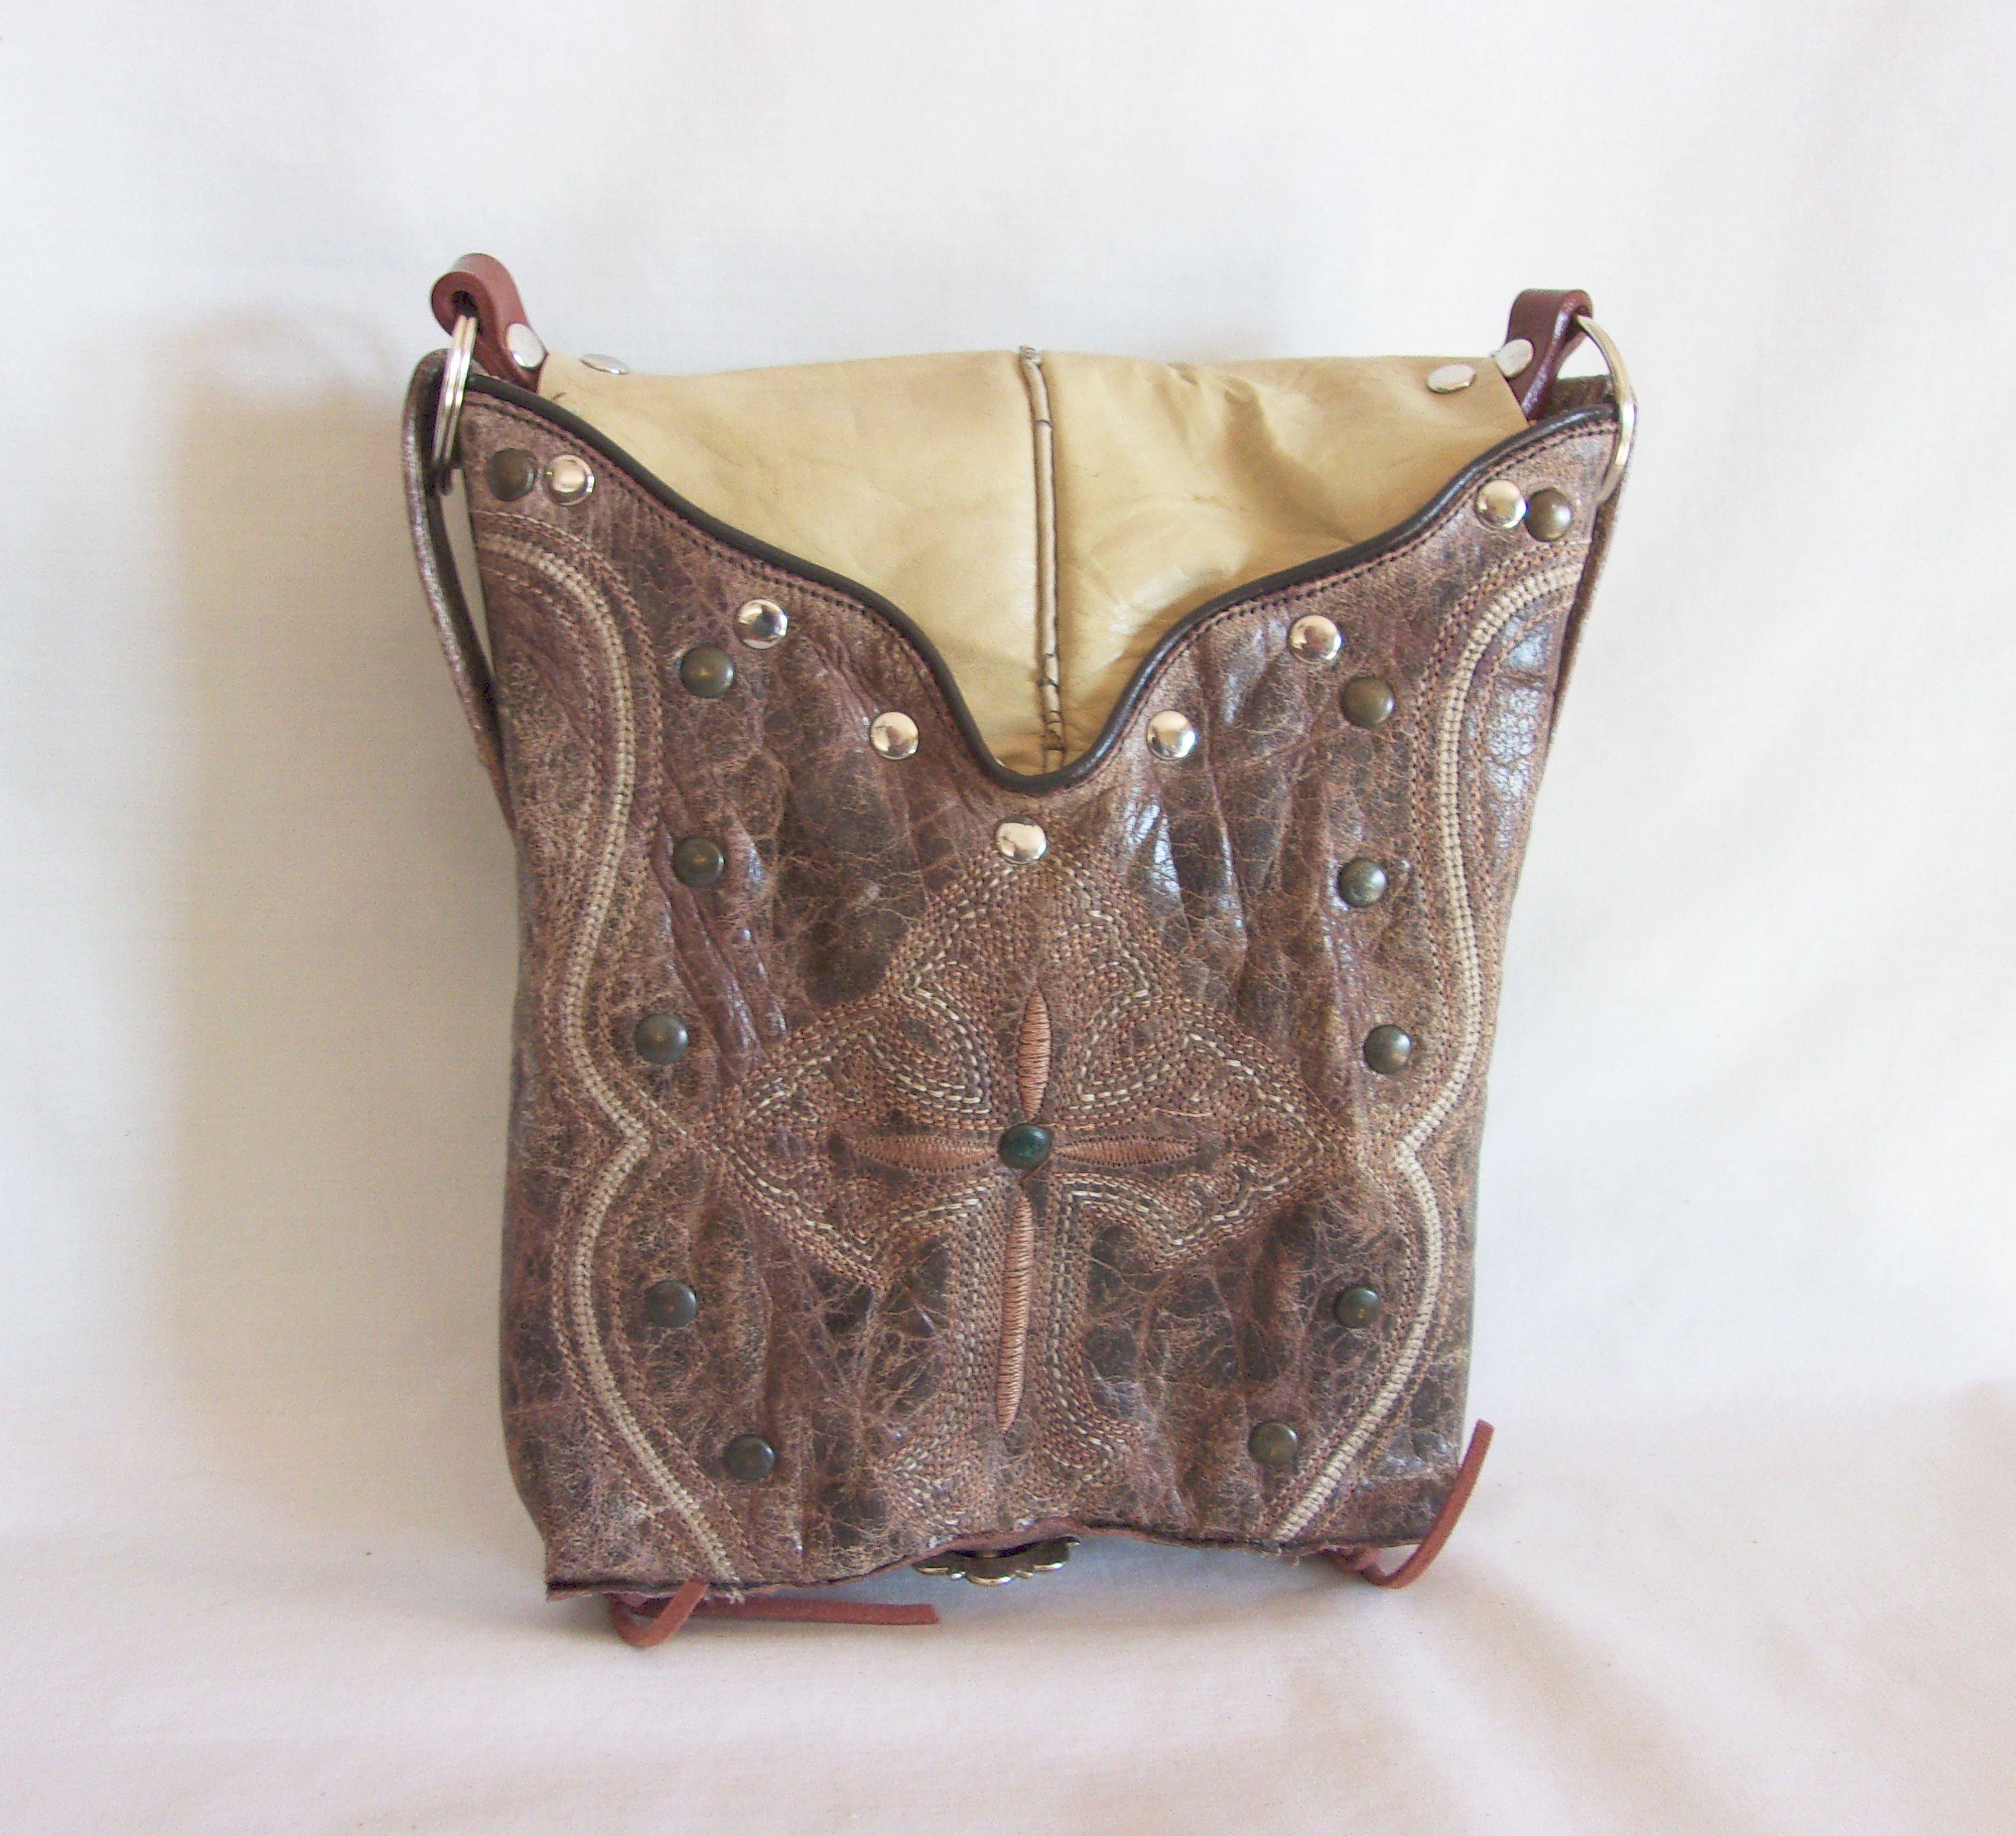 Small Western Purse - Cowboy Boot Purse - Small Western Bag - Sporran Kilt Bag sm80 cowboy boot purses, western fringe purse, handmade leather purses, boot purse, handmade western purse, custom leather handbags Chris Thompson Bags